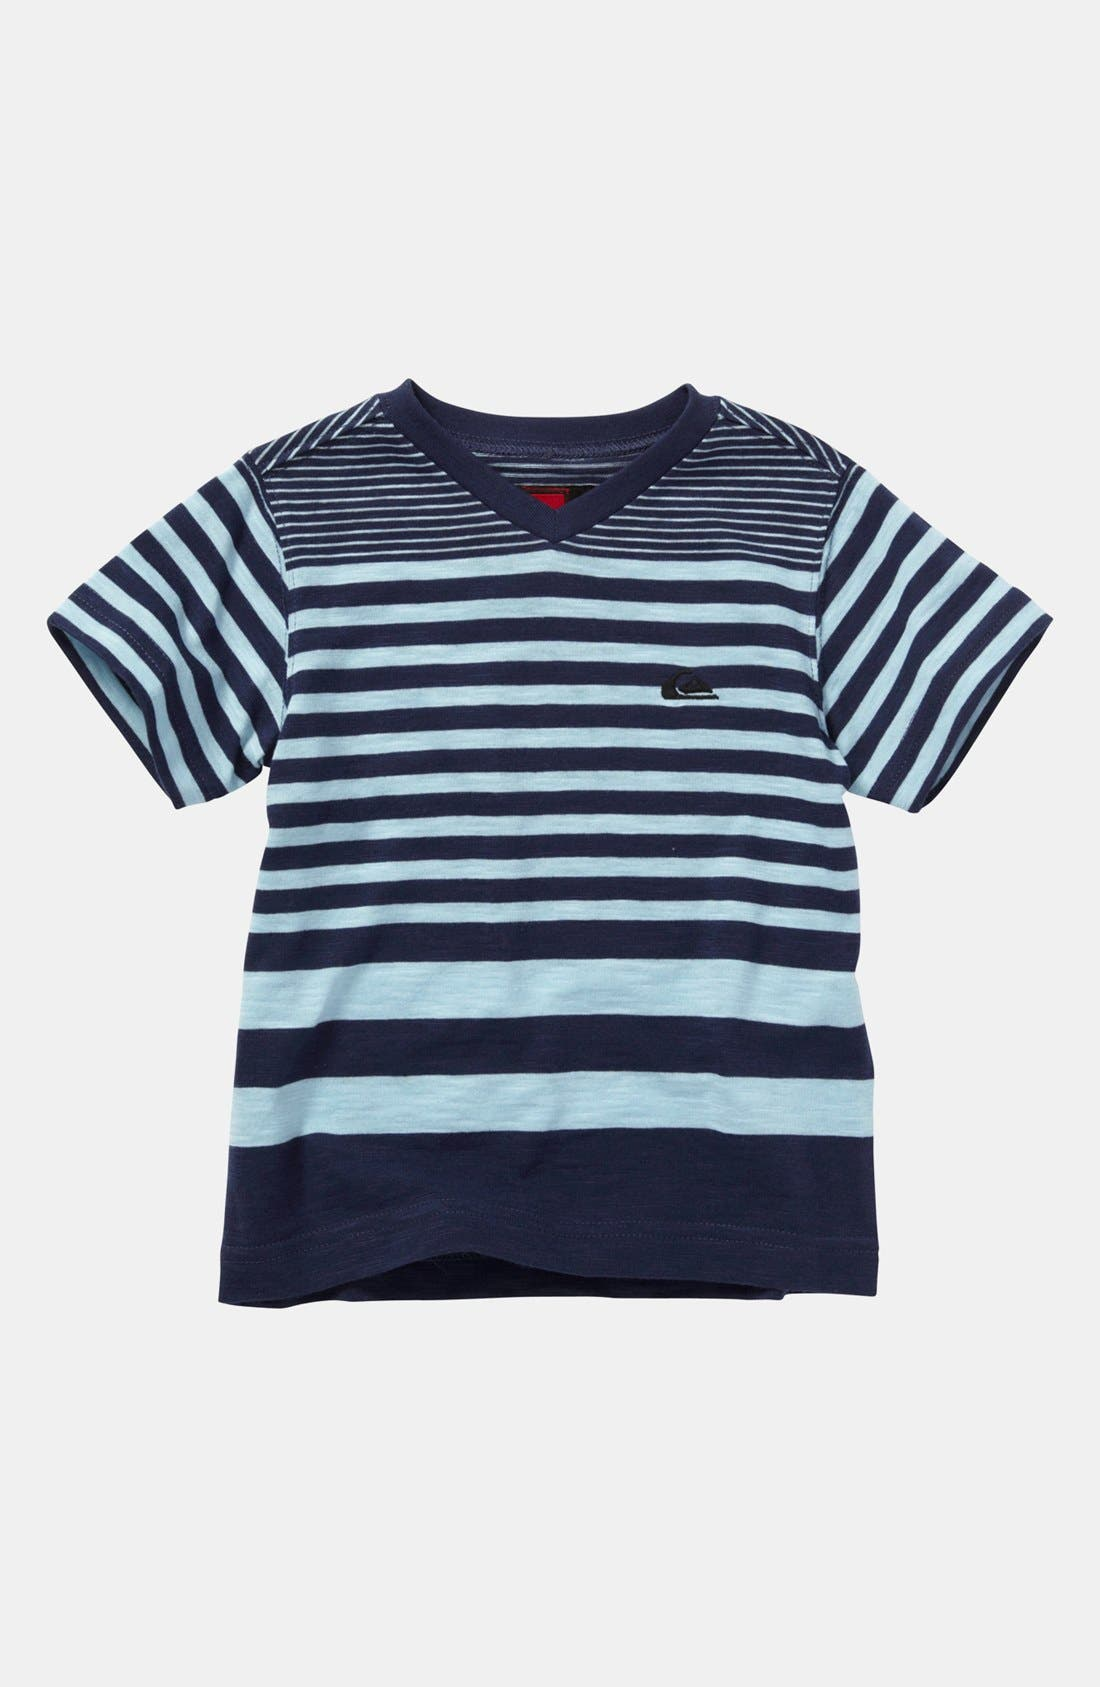 Main Image - Quiksilver 'Car Path' T-Shirt (Baby)